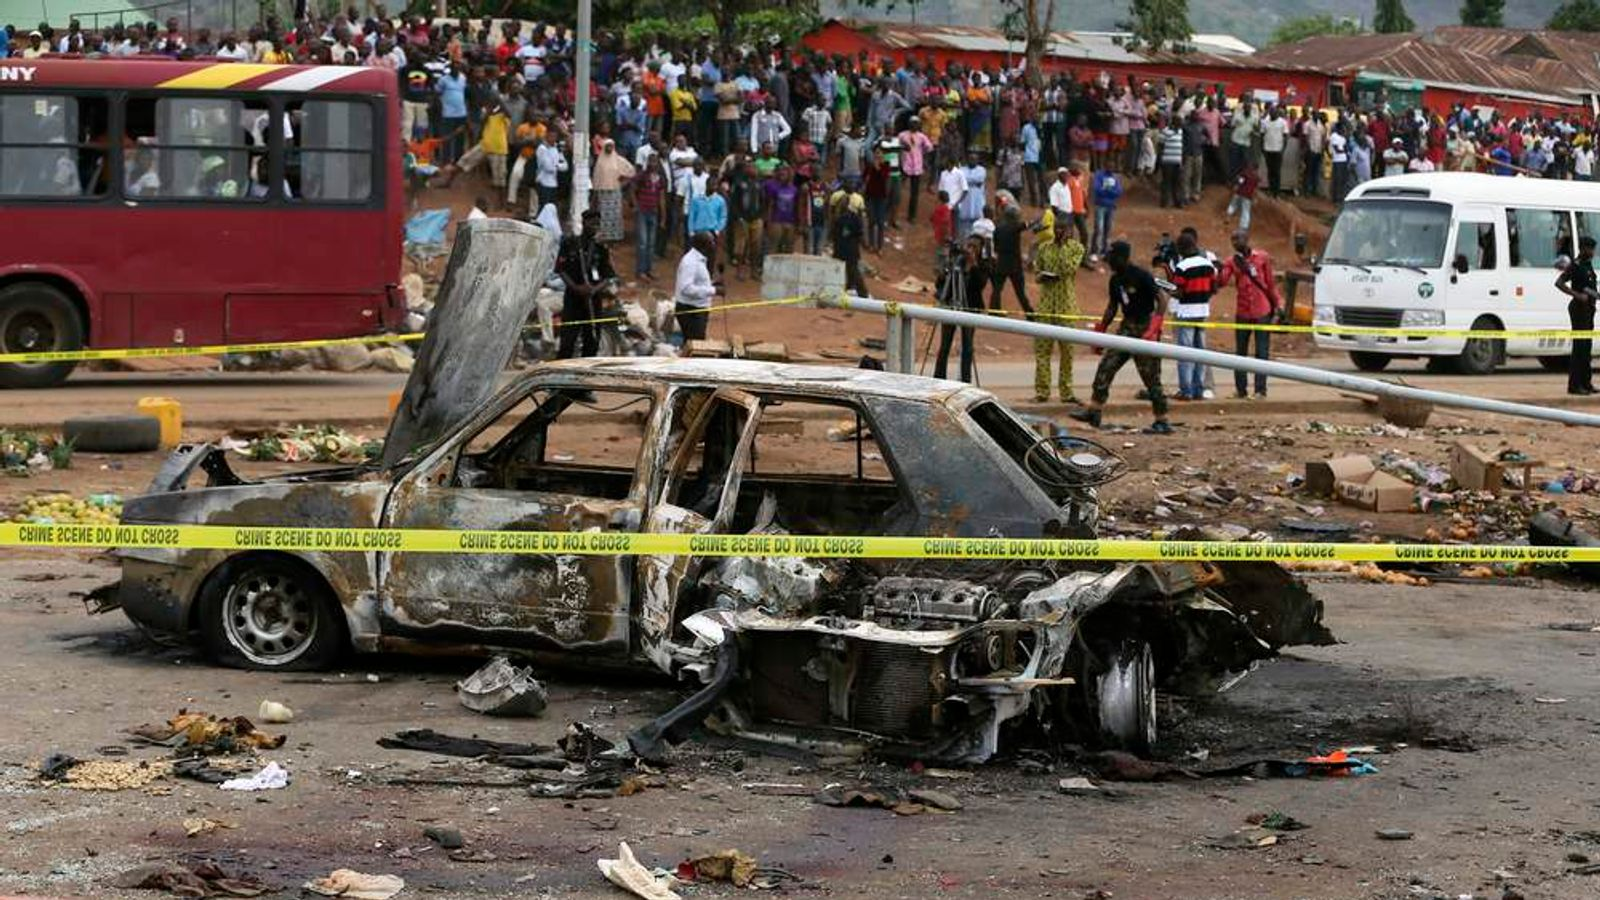 A damaged car is seen at the scene of a car bomb blast in Nyanya, Abuja